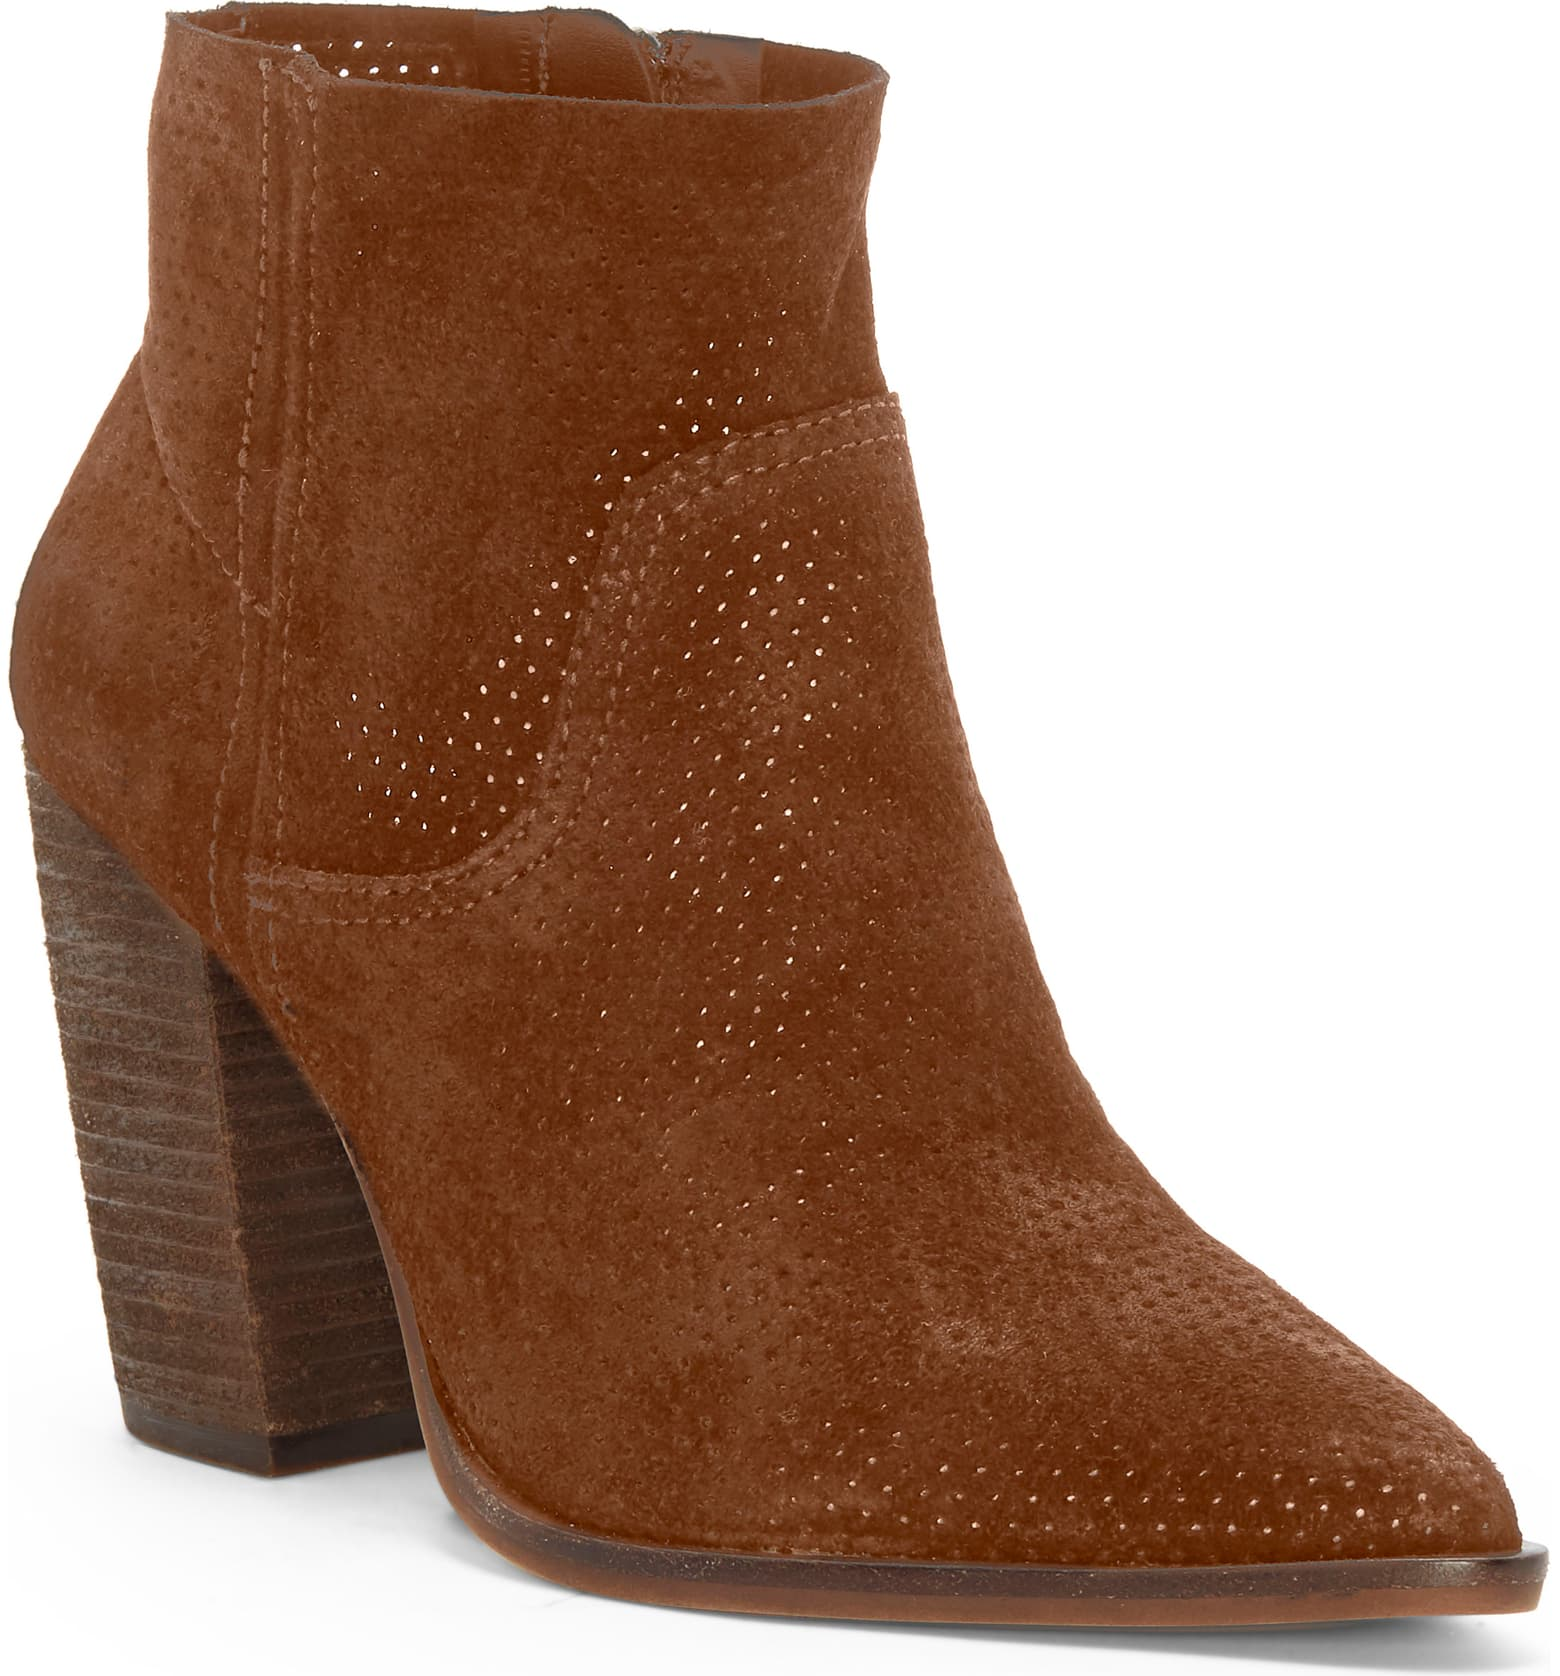 perforated fall boots in autumn shades are so popular for fall 2019 trending boots! Check out all the styles here!